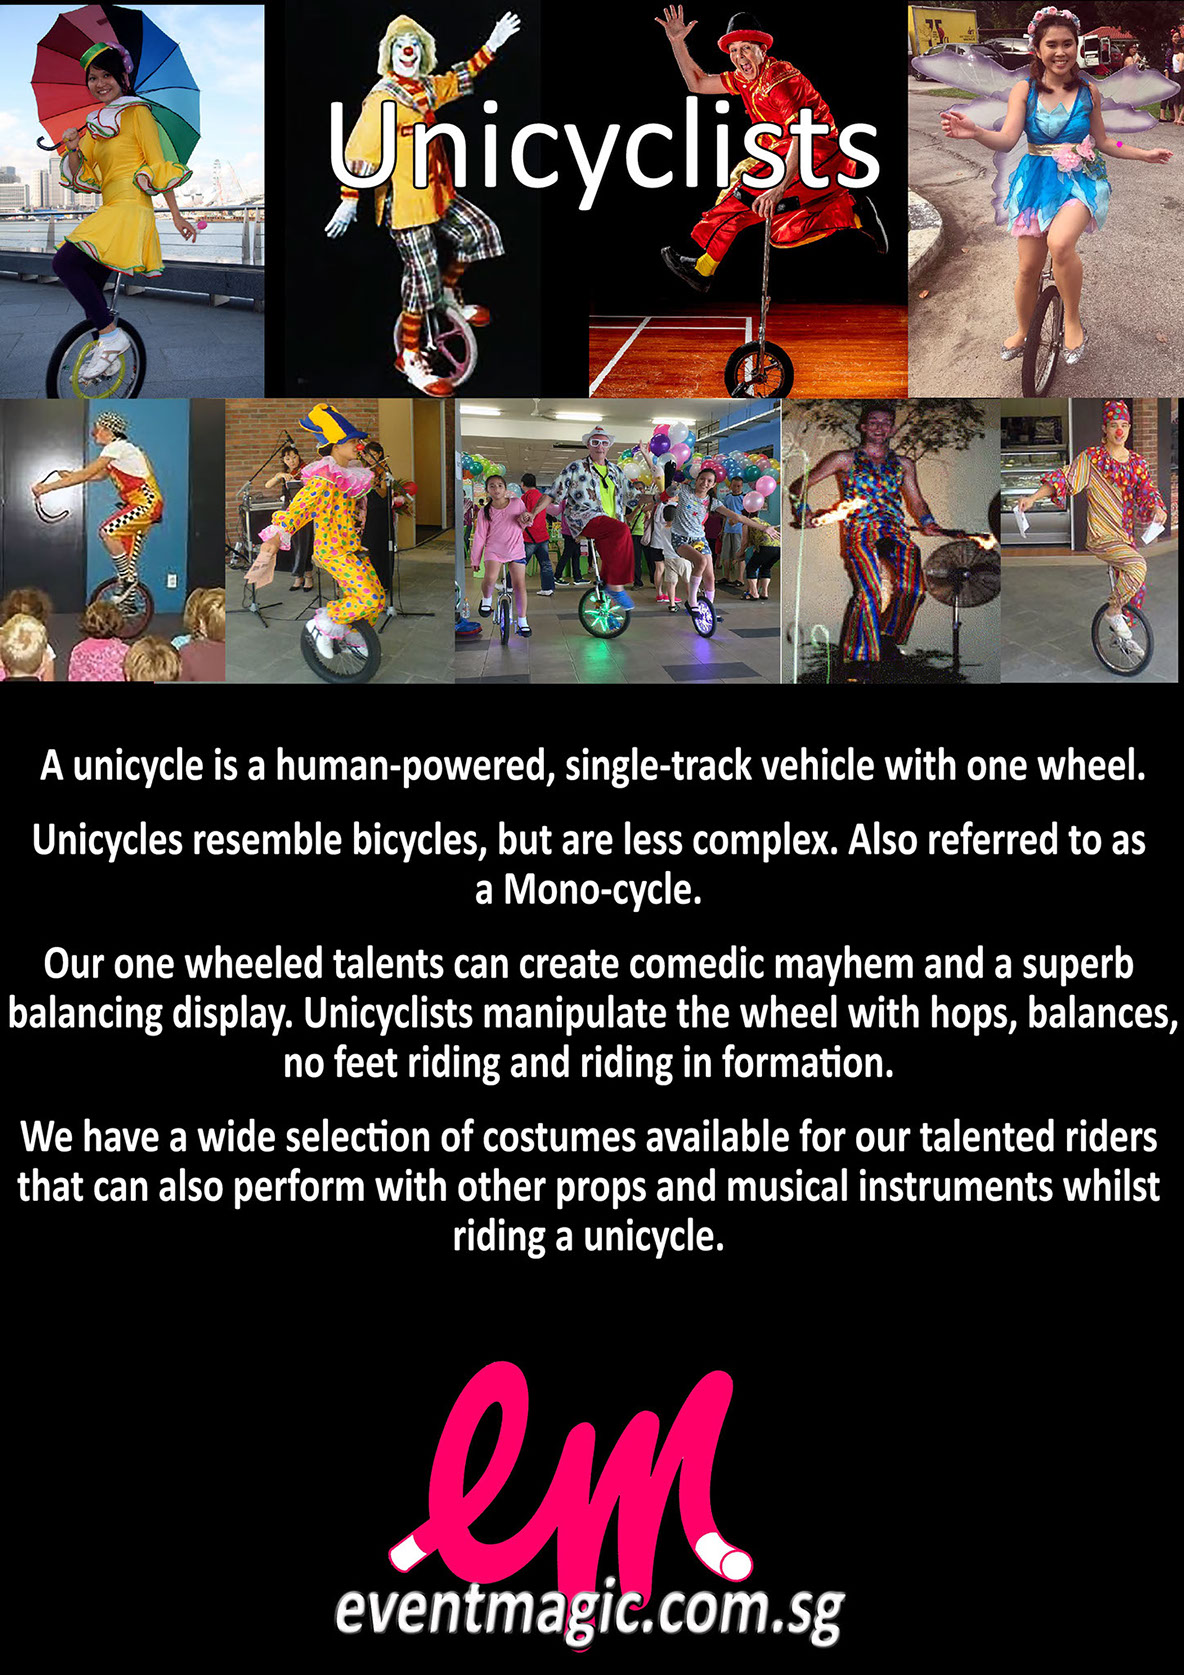 Unicycle for hire Singapore, Unicyclist Singapore Performer, monocycle Singapore, Roving Entertainment for hire, Busking entertainer for hire,